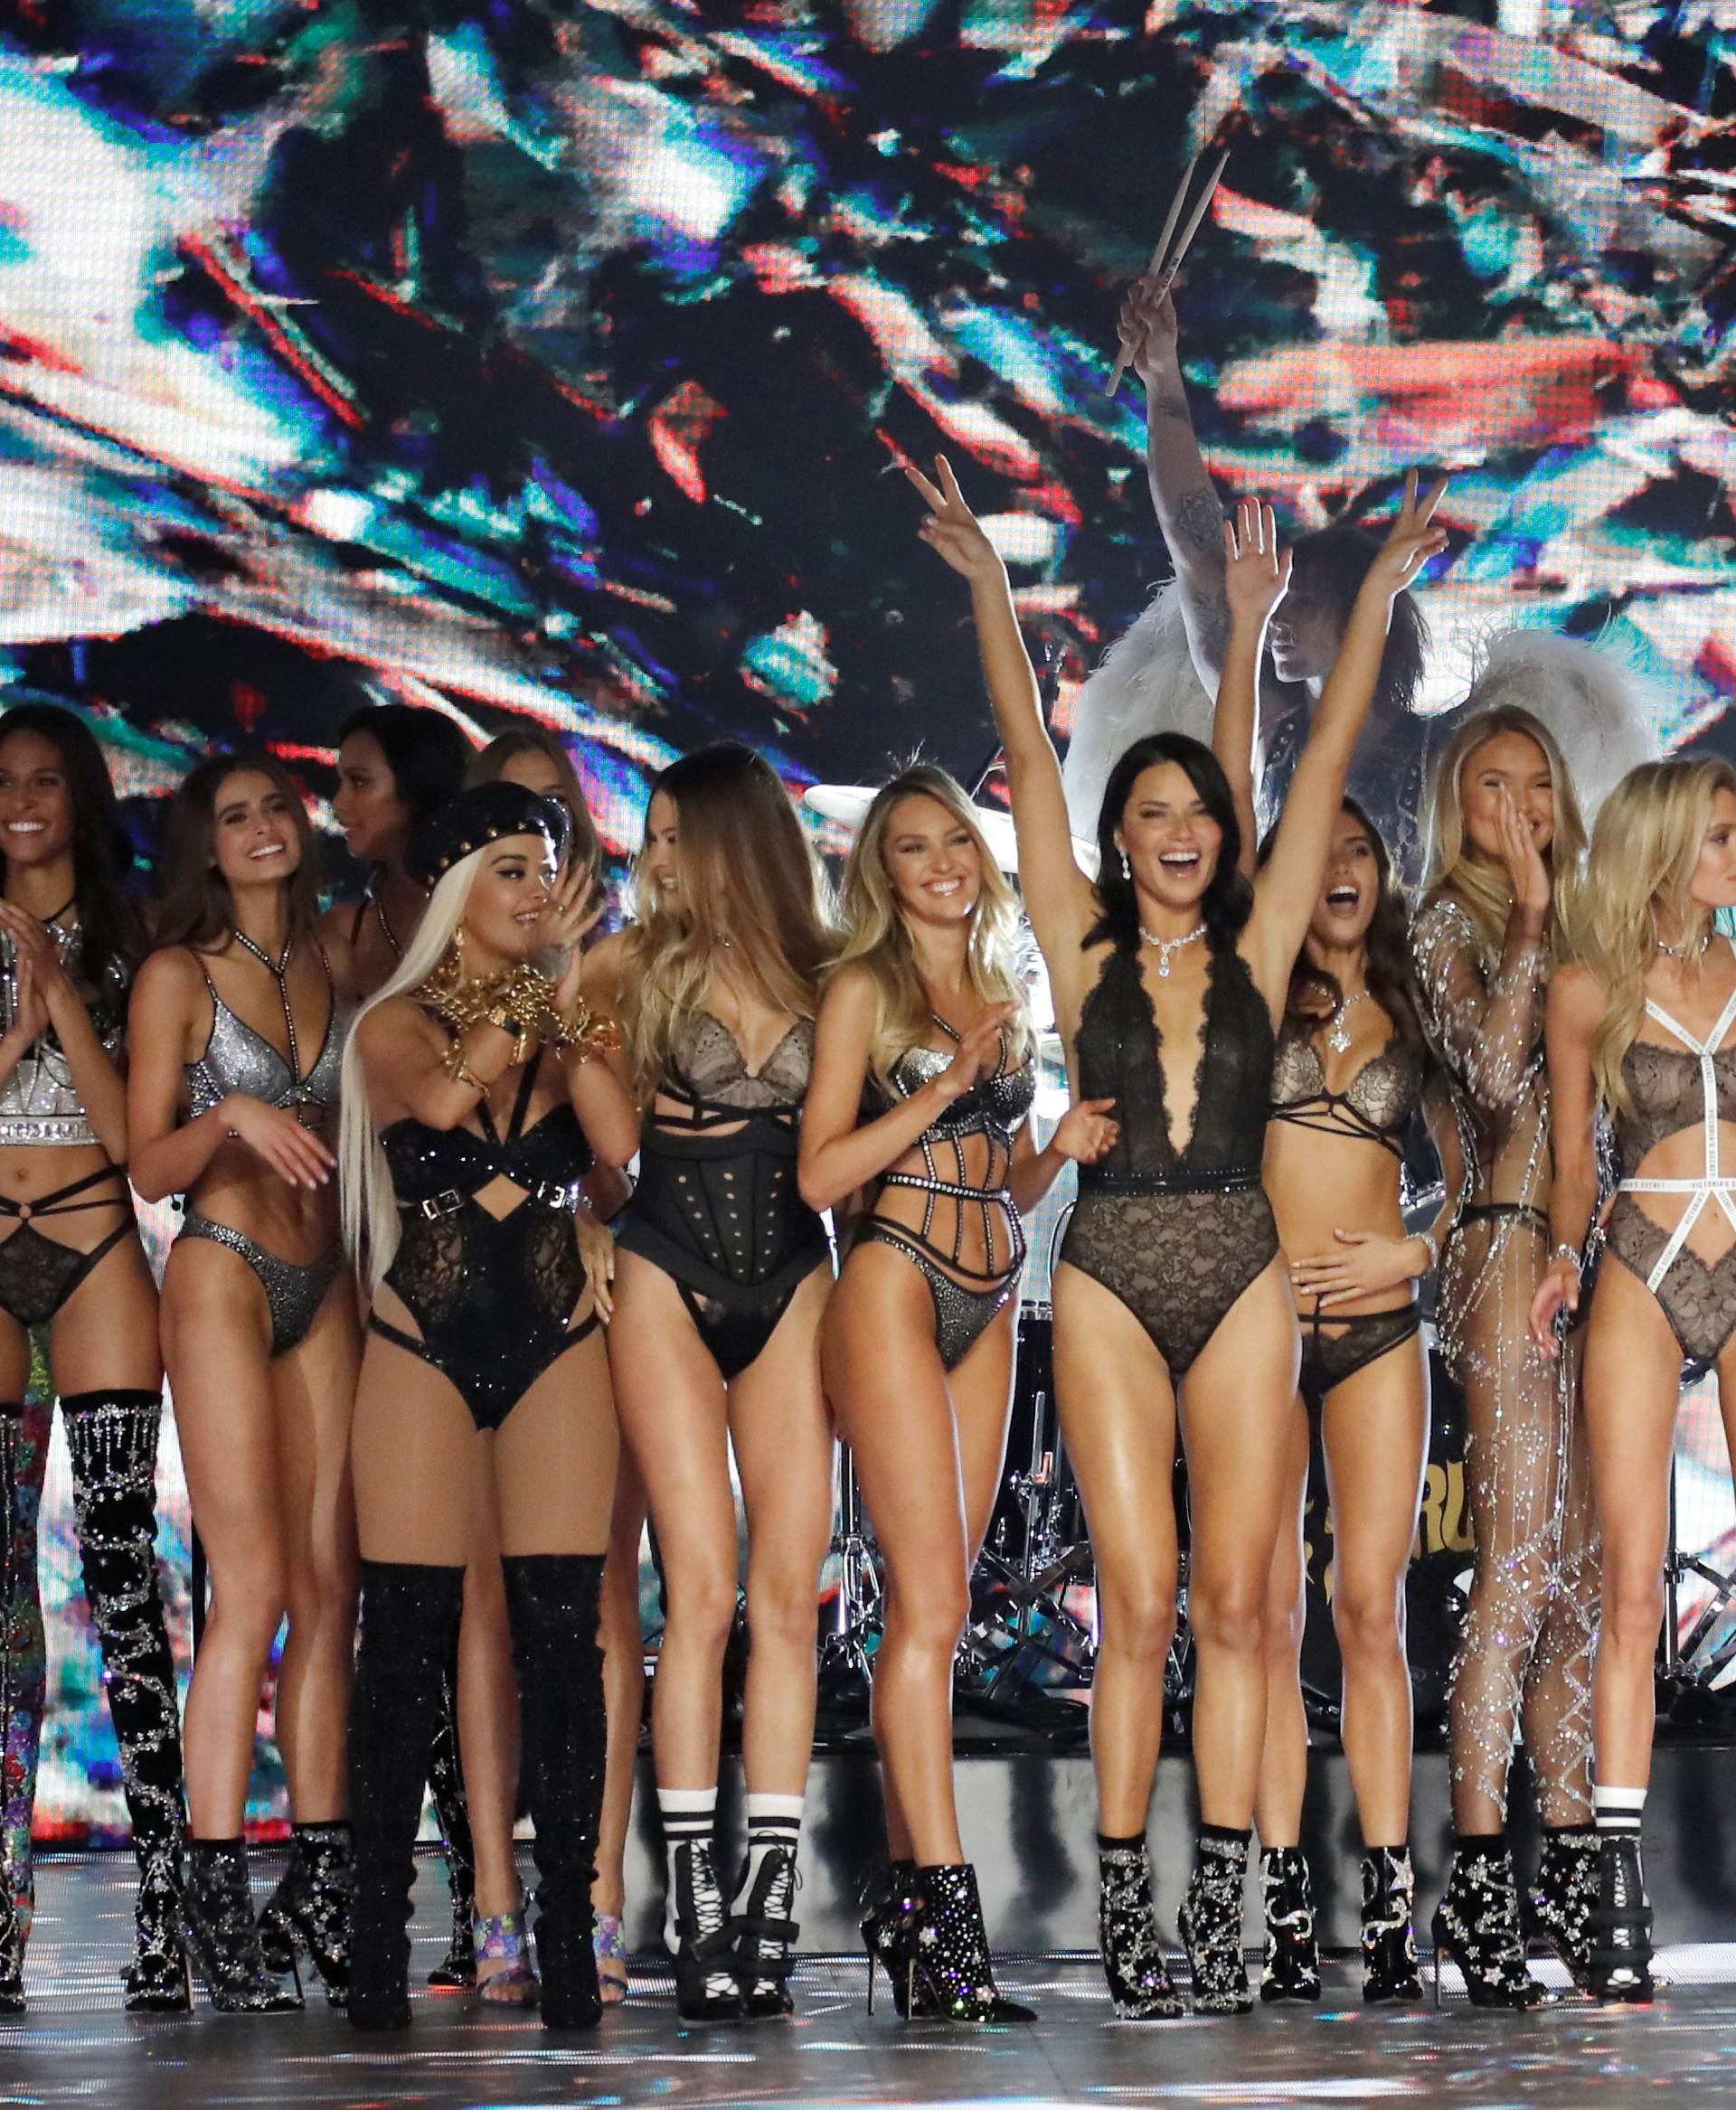 Model Adriana Lima and other models present creations during the 2018 Victoria's Secret Fashion Show in New York City